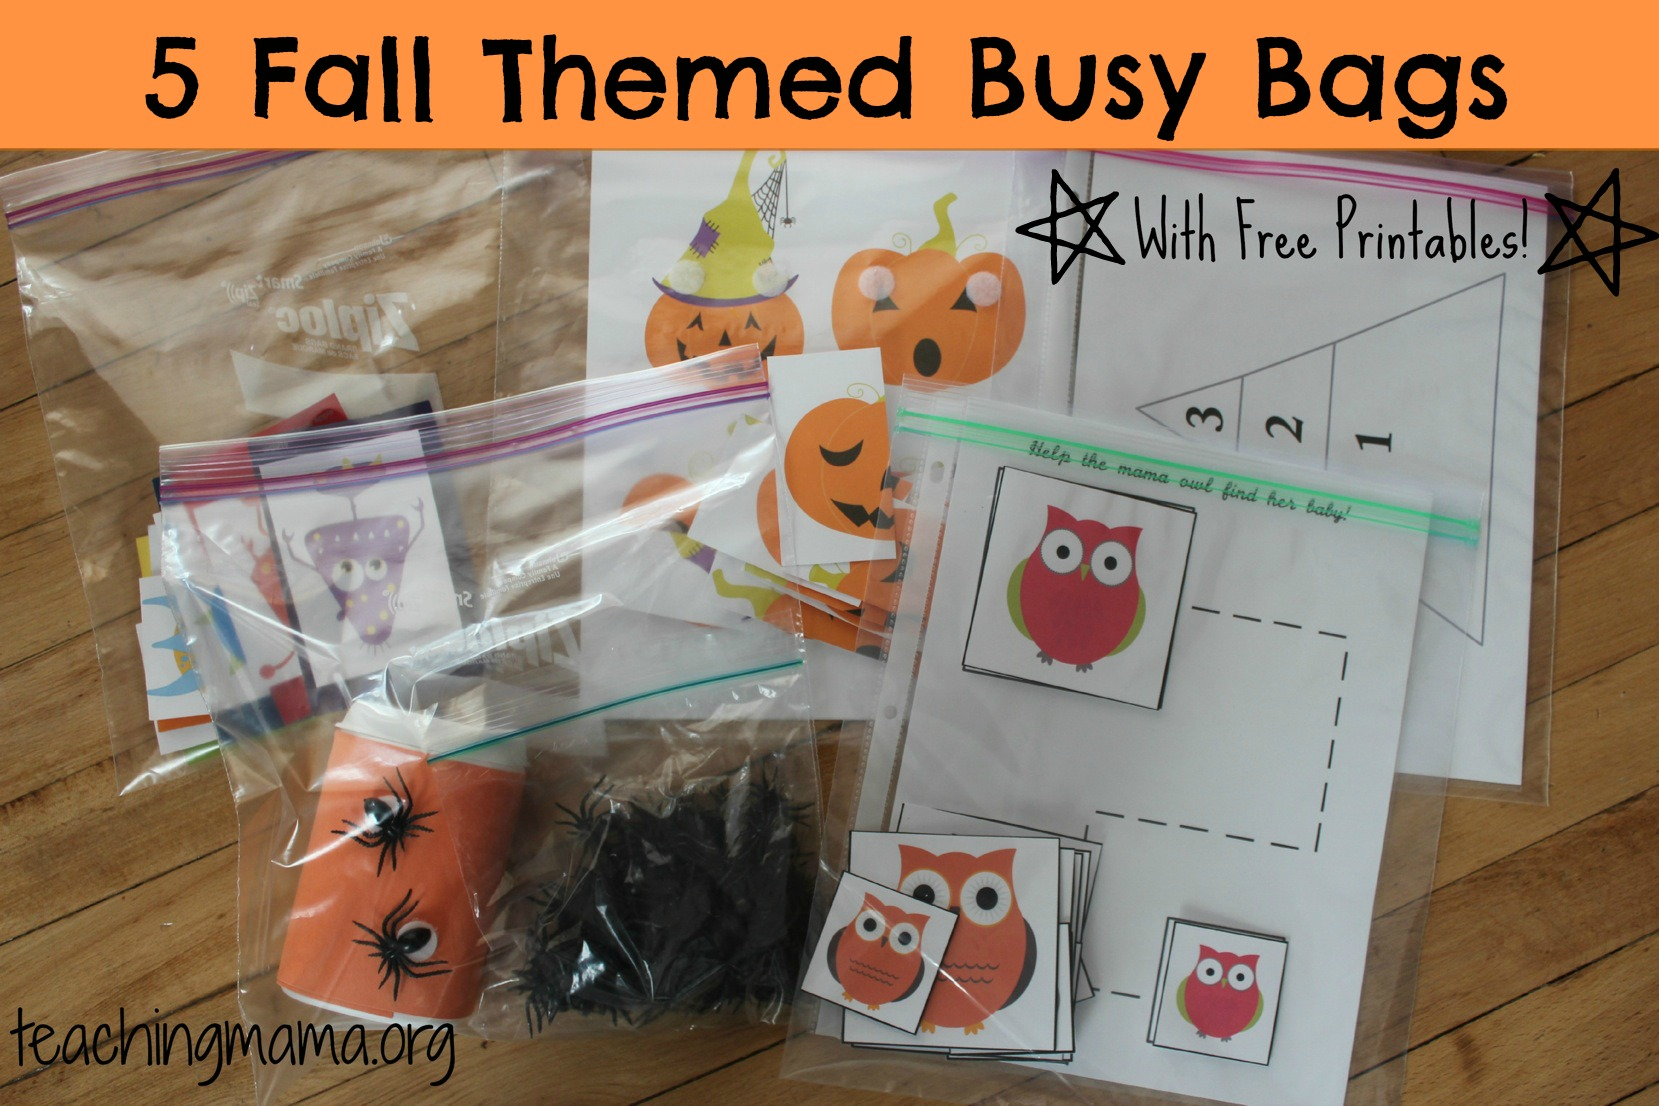 5 Fall Themed Busy Bags